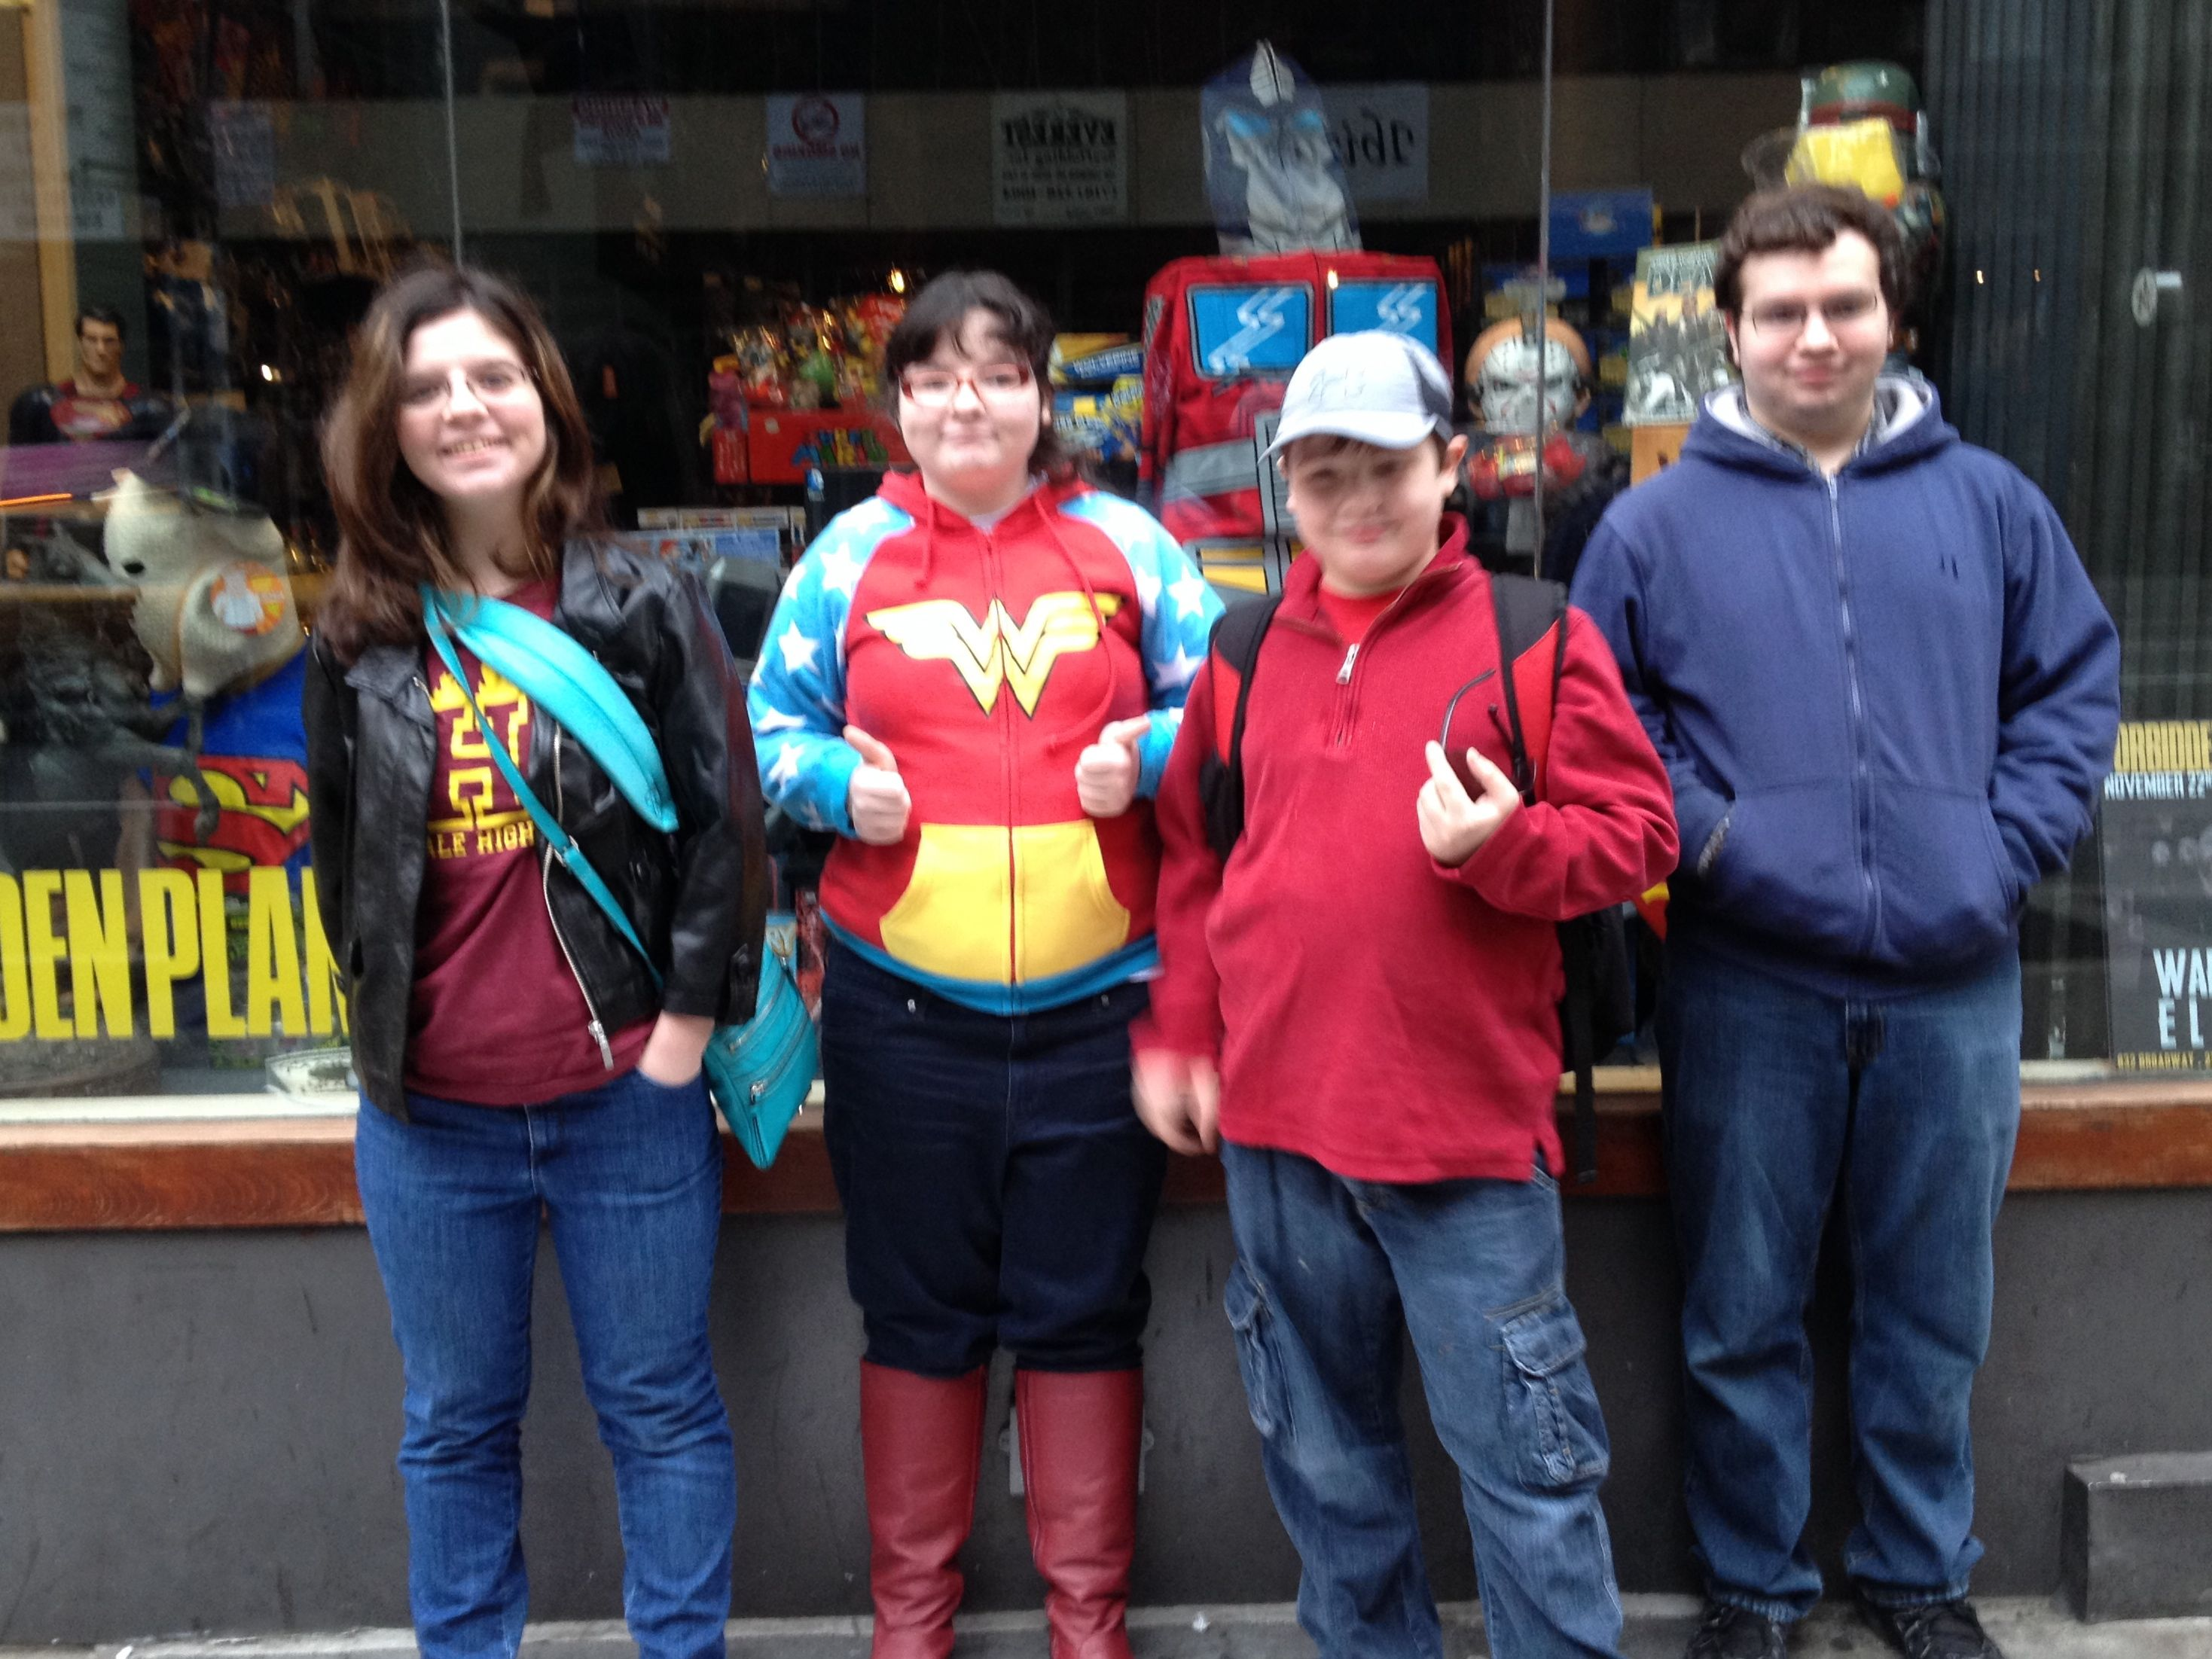 The geek crew of Corrina Lawson outside Forbidden Planet in New York City in November, just before filming the NickMom segment.